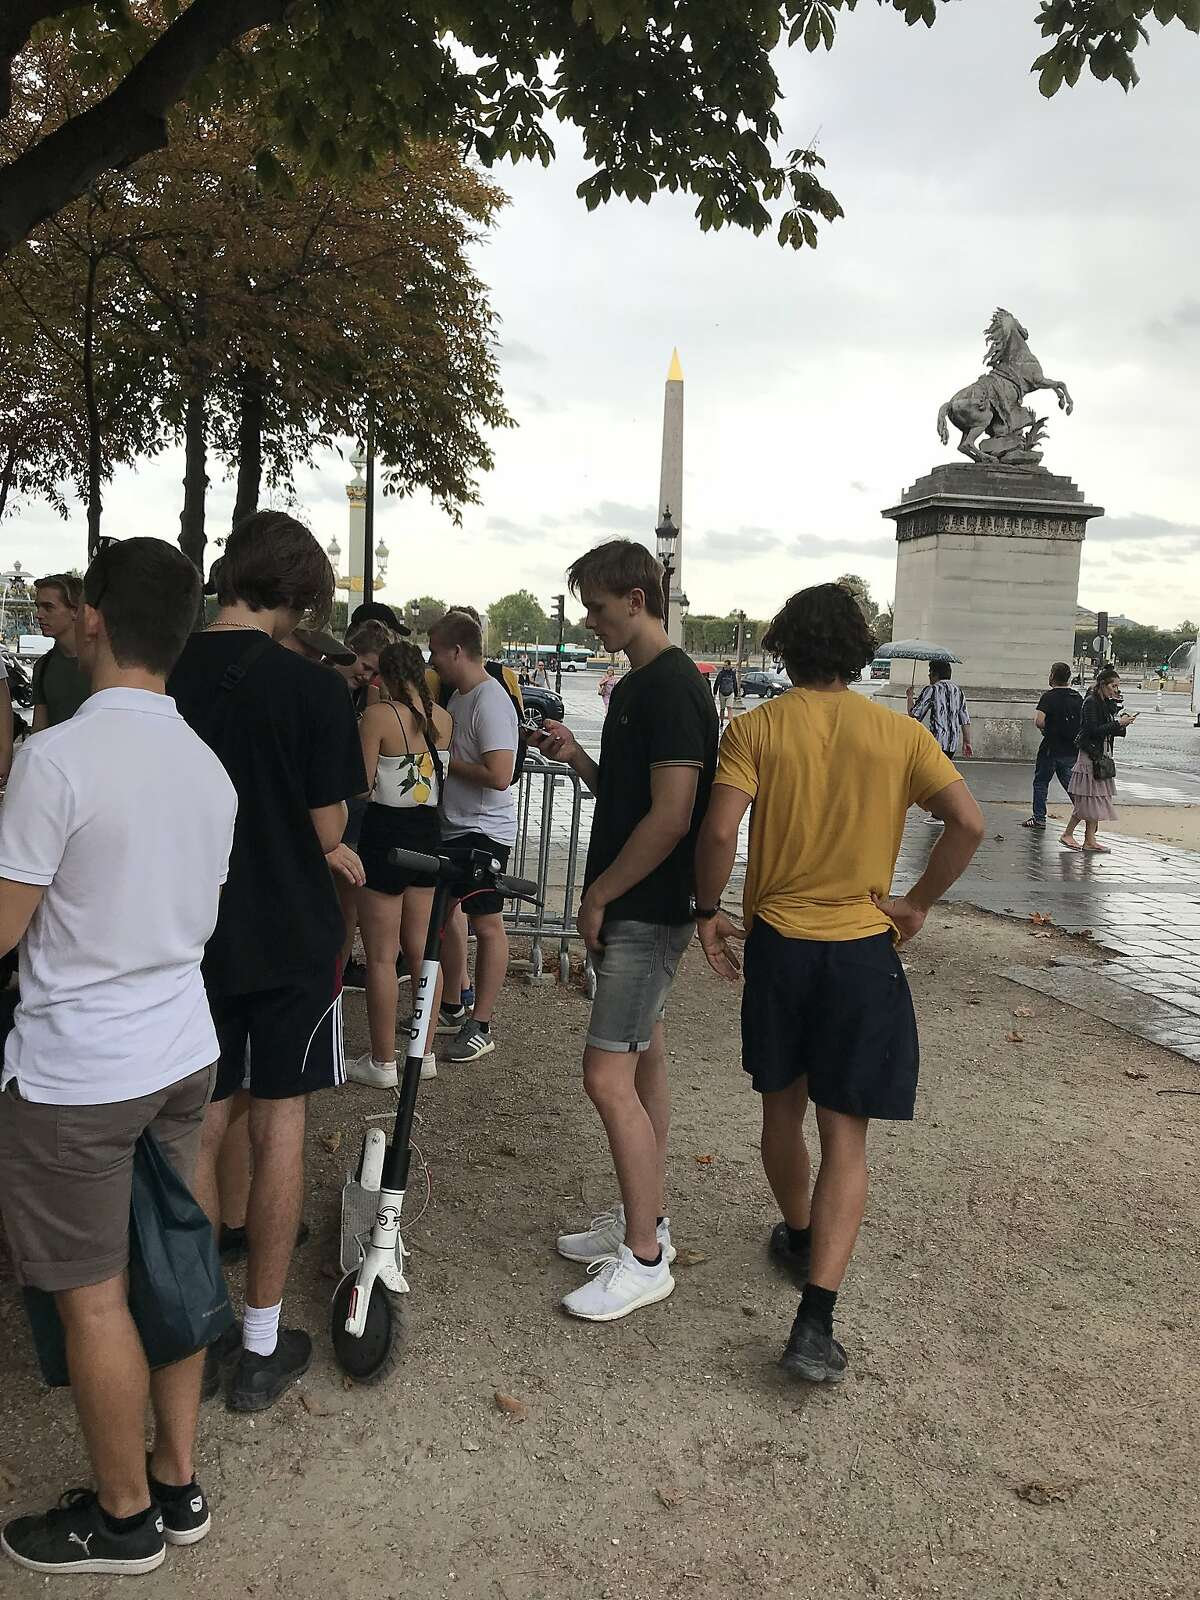 Danish students return a Bird scooter after a ride near the Place de La Concorde in Paris, France on September 25, 2018.